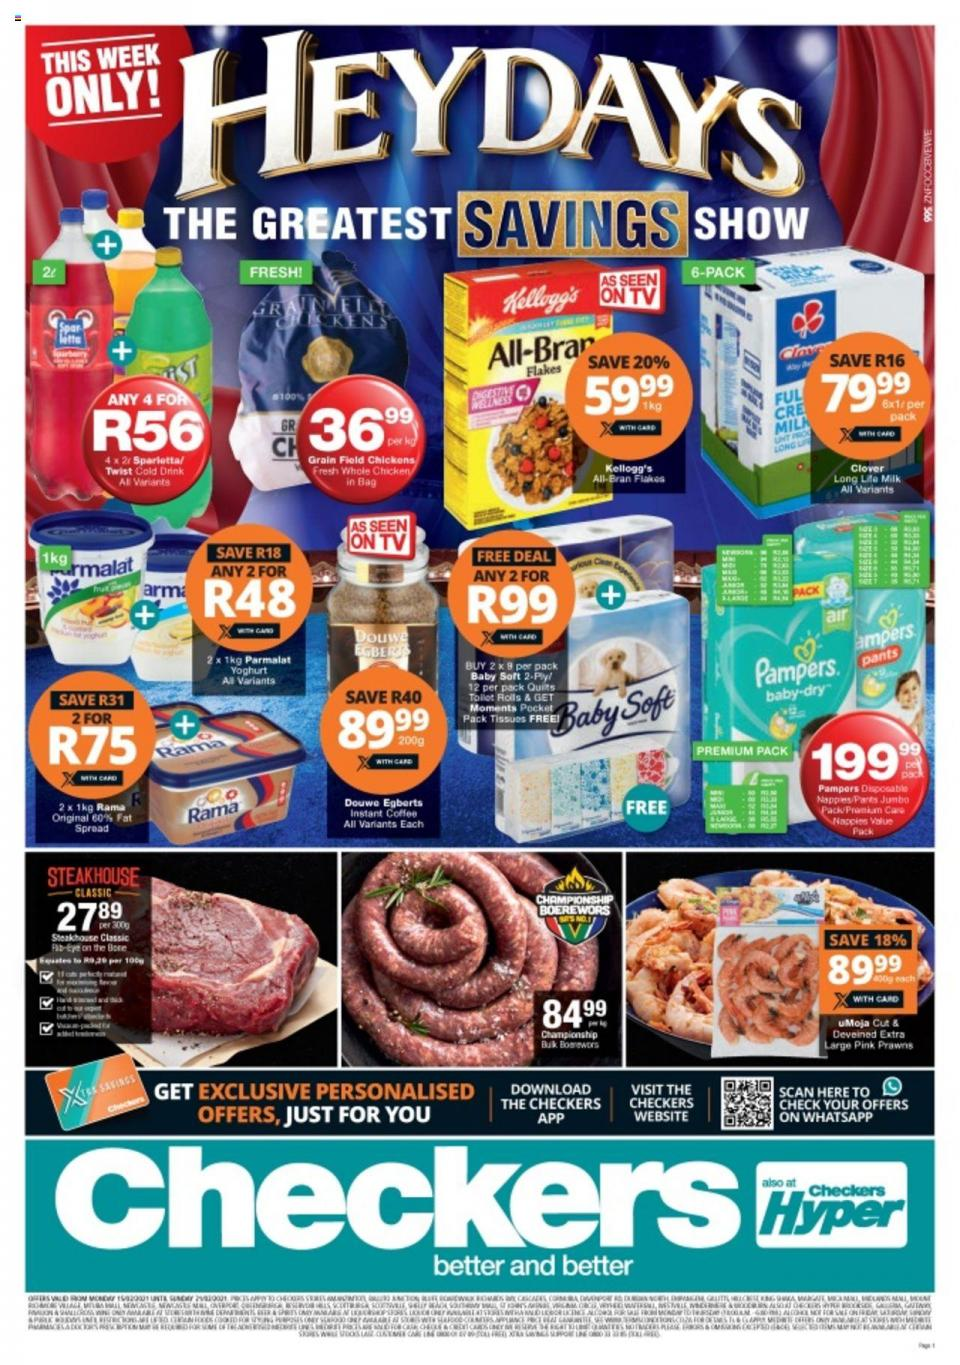 checkers specials heydays promotion 15 february 2021